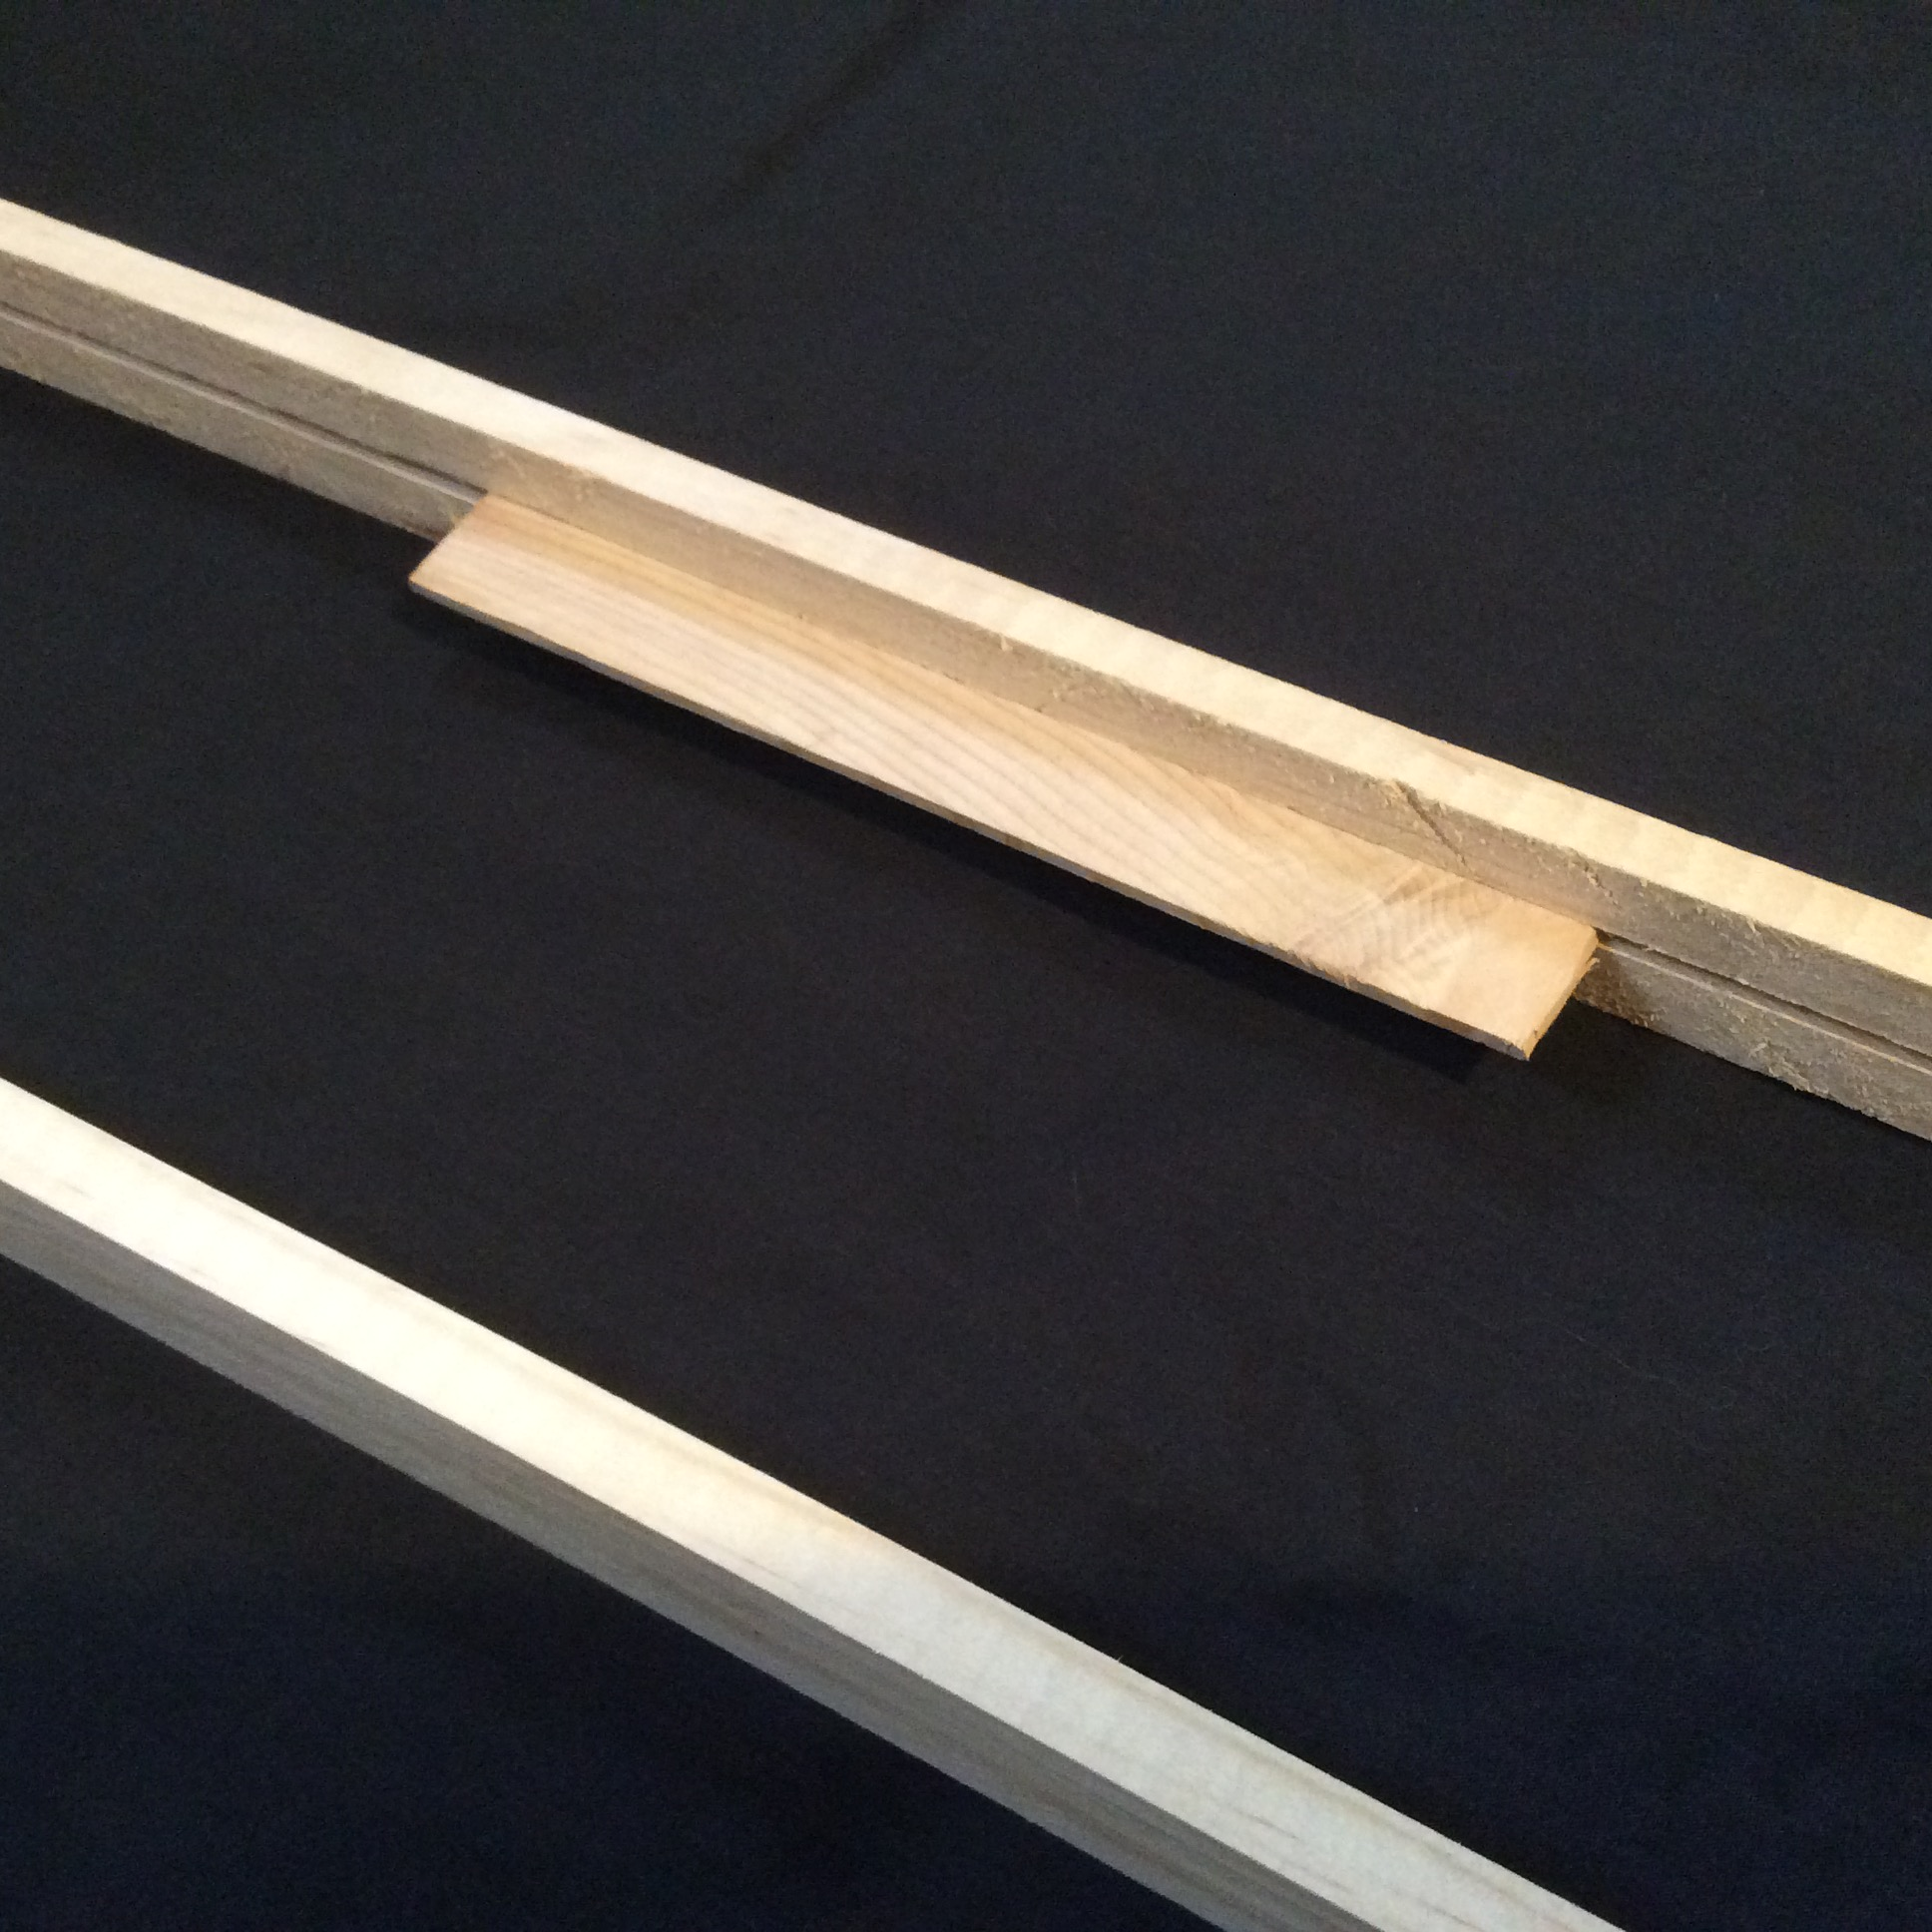 Ideal frame using a starter strip of thin wood